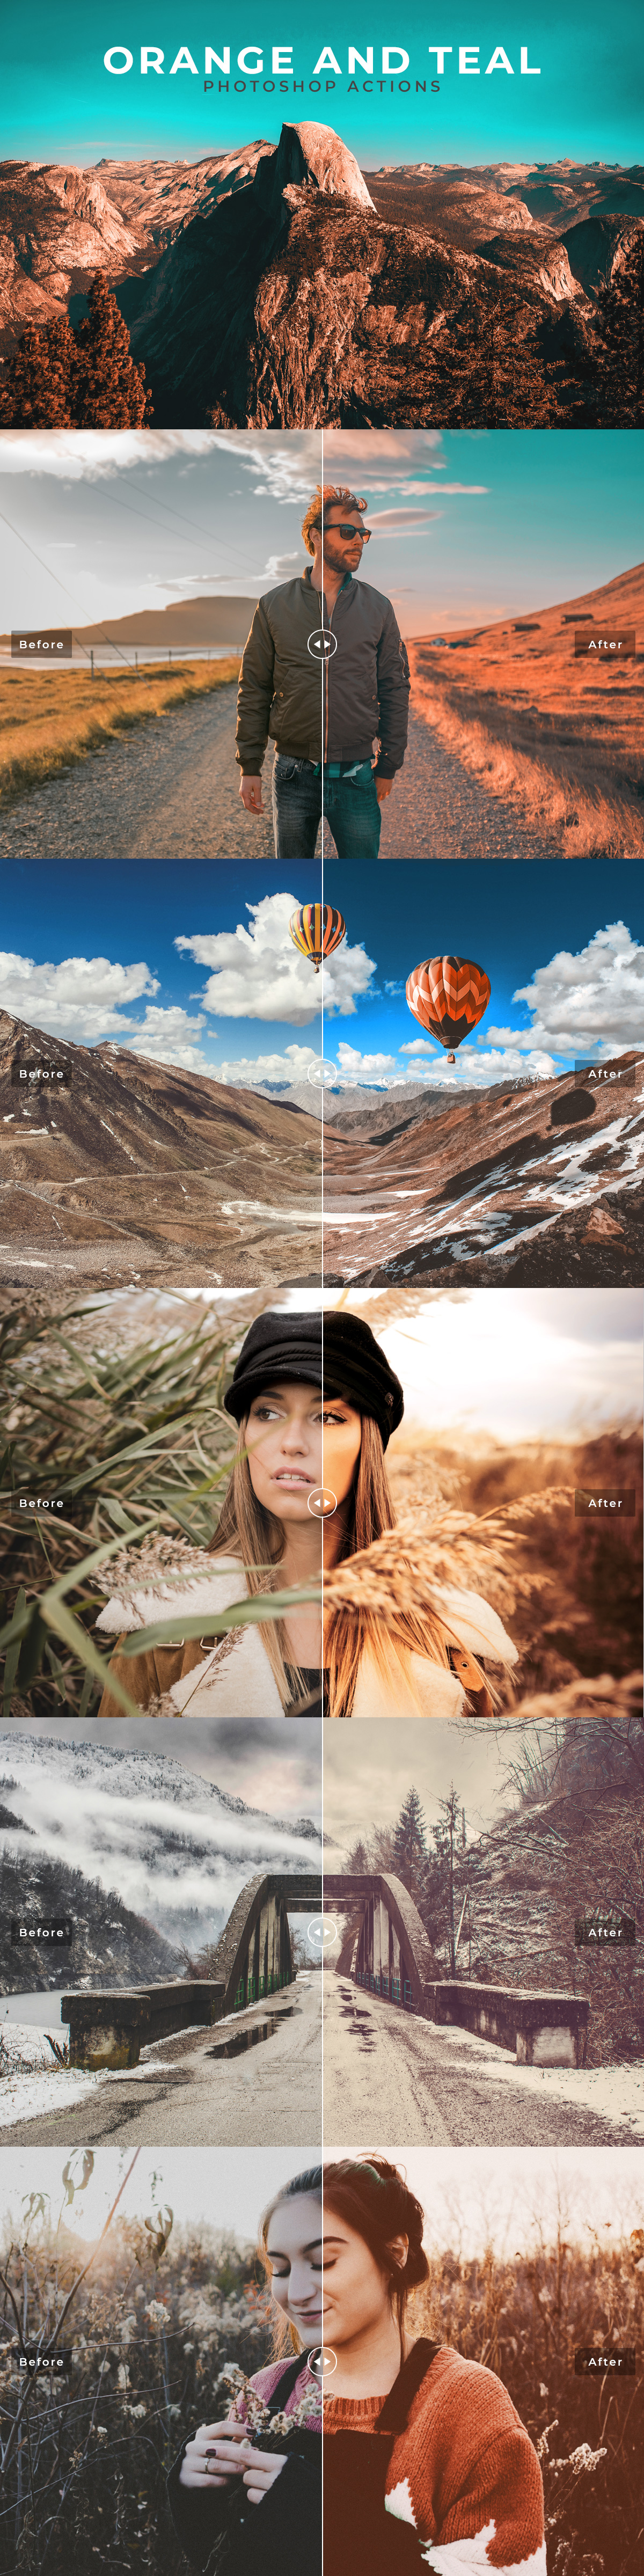 Free #Orange and #Teal Photoshop #Actions are created for professional photographers and designers.